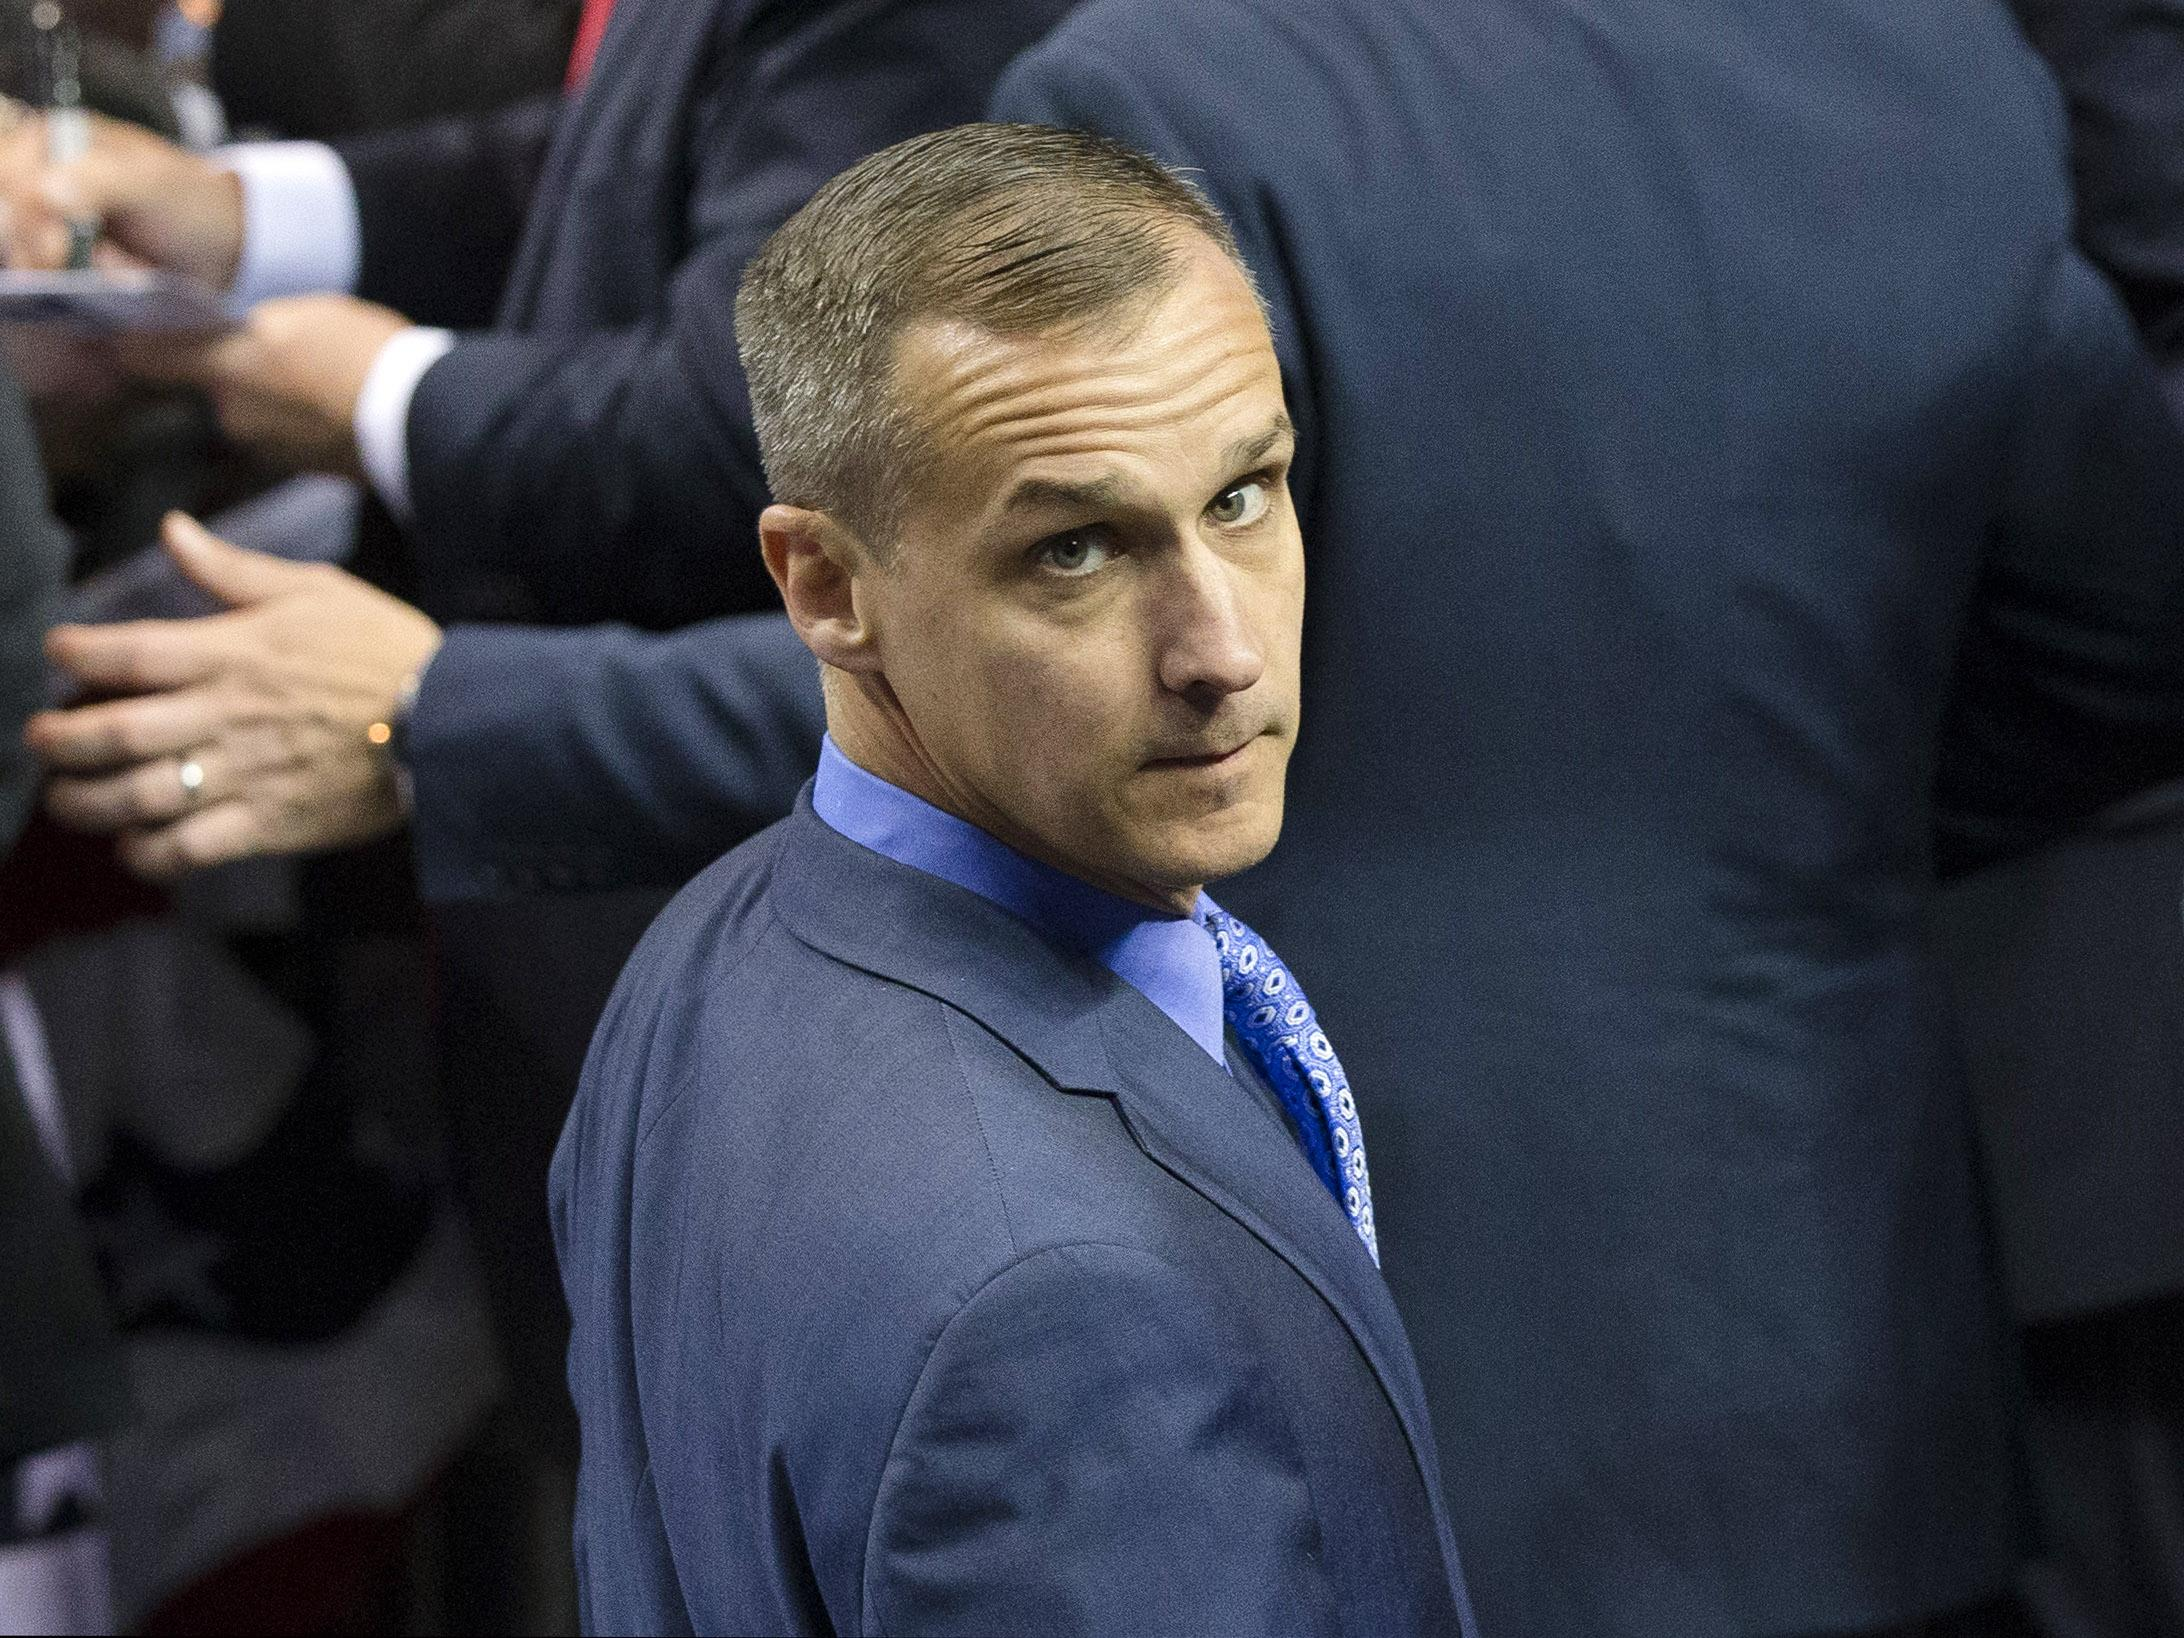 CNN's Lewandowski joins stable of former operatives on news